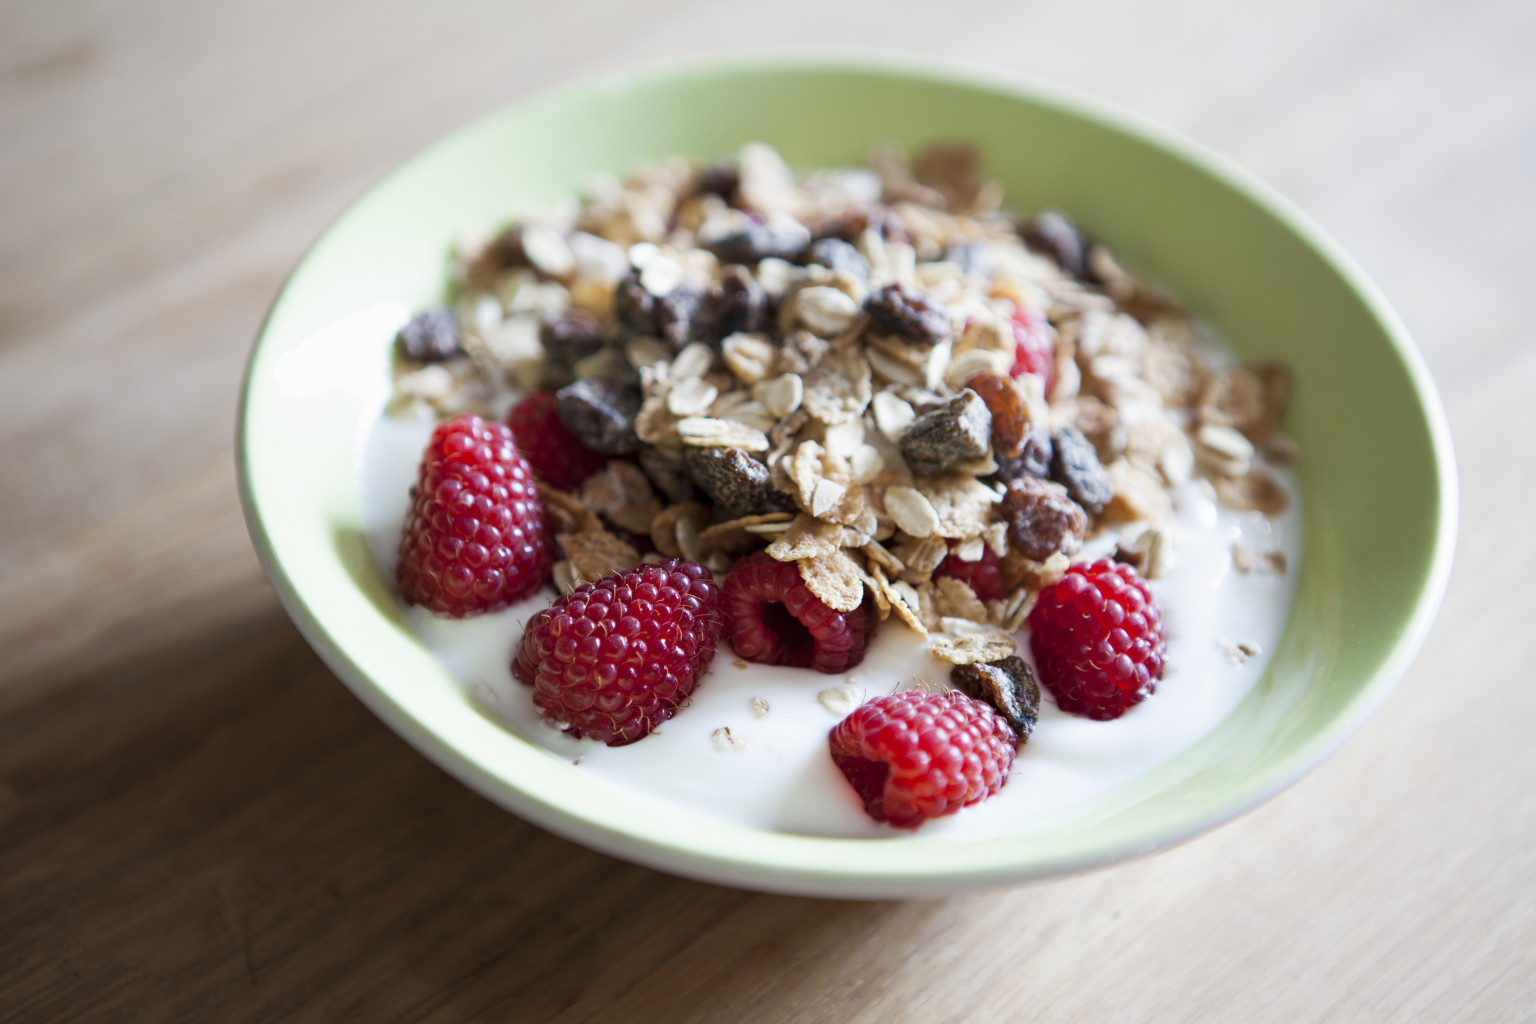 Healthy breakfast ideas for pregnant moms